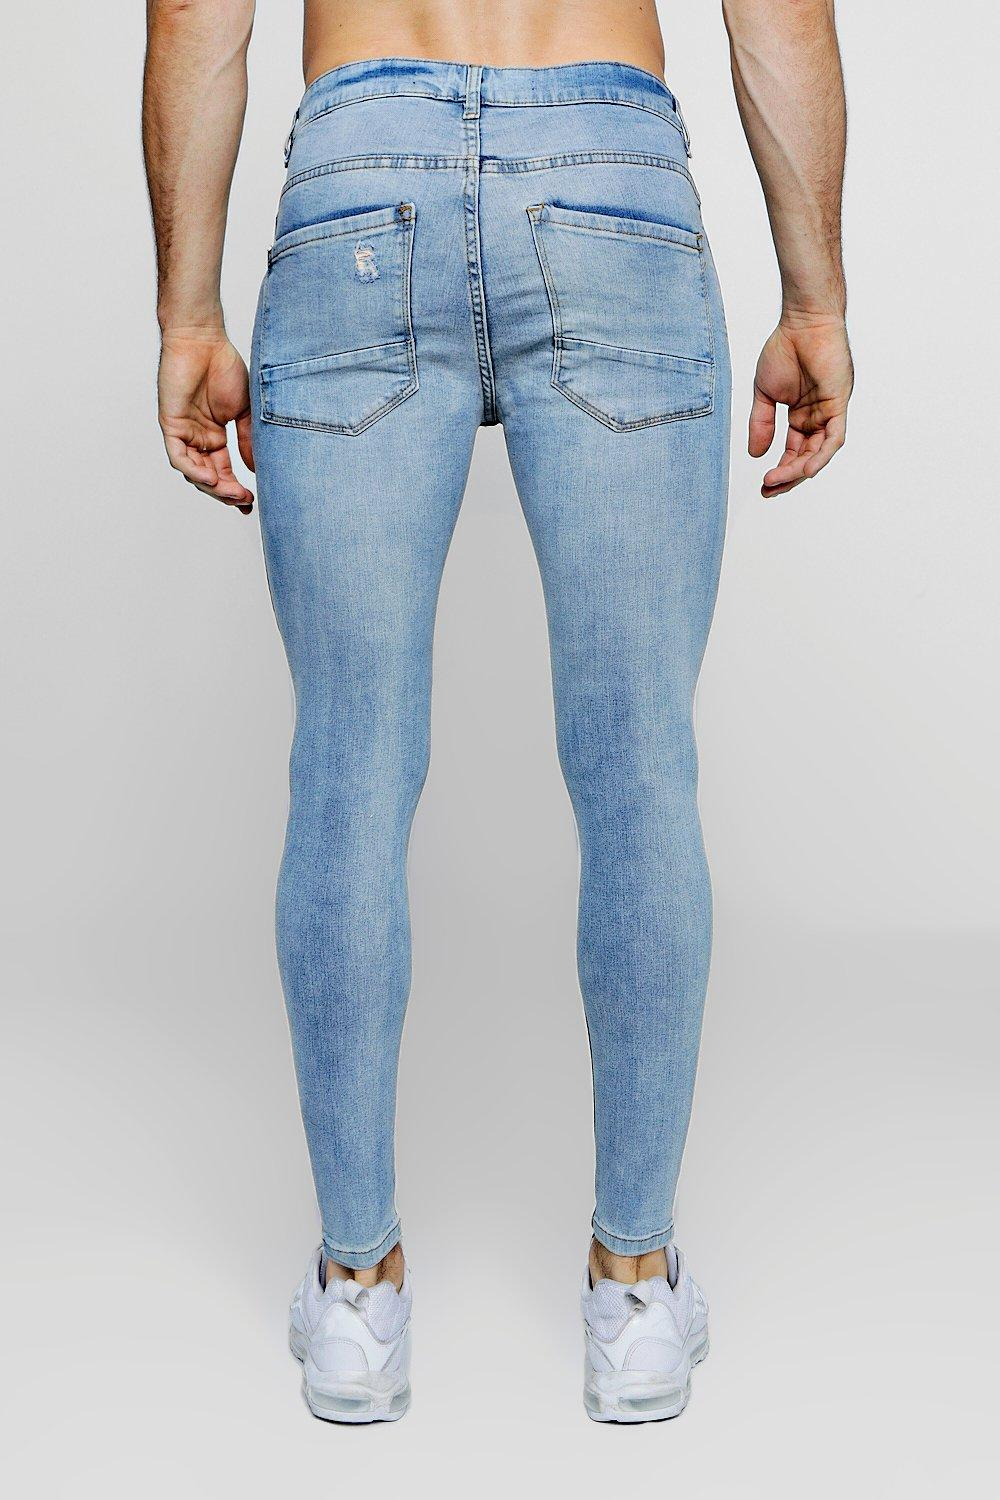 Super blue With Rips washed knee Fit Skinny Jeans RHnqATfR